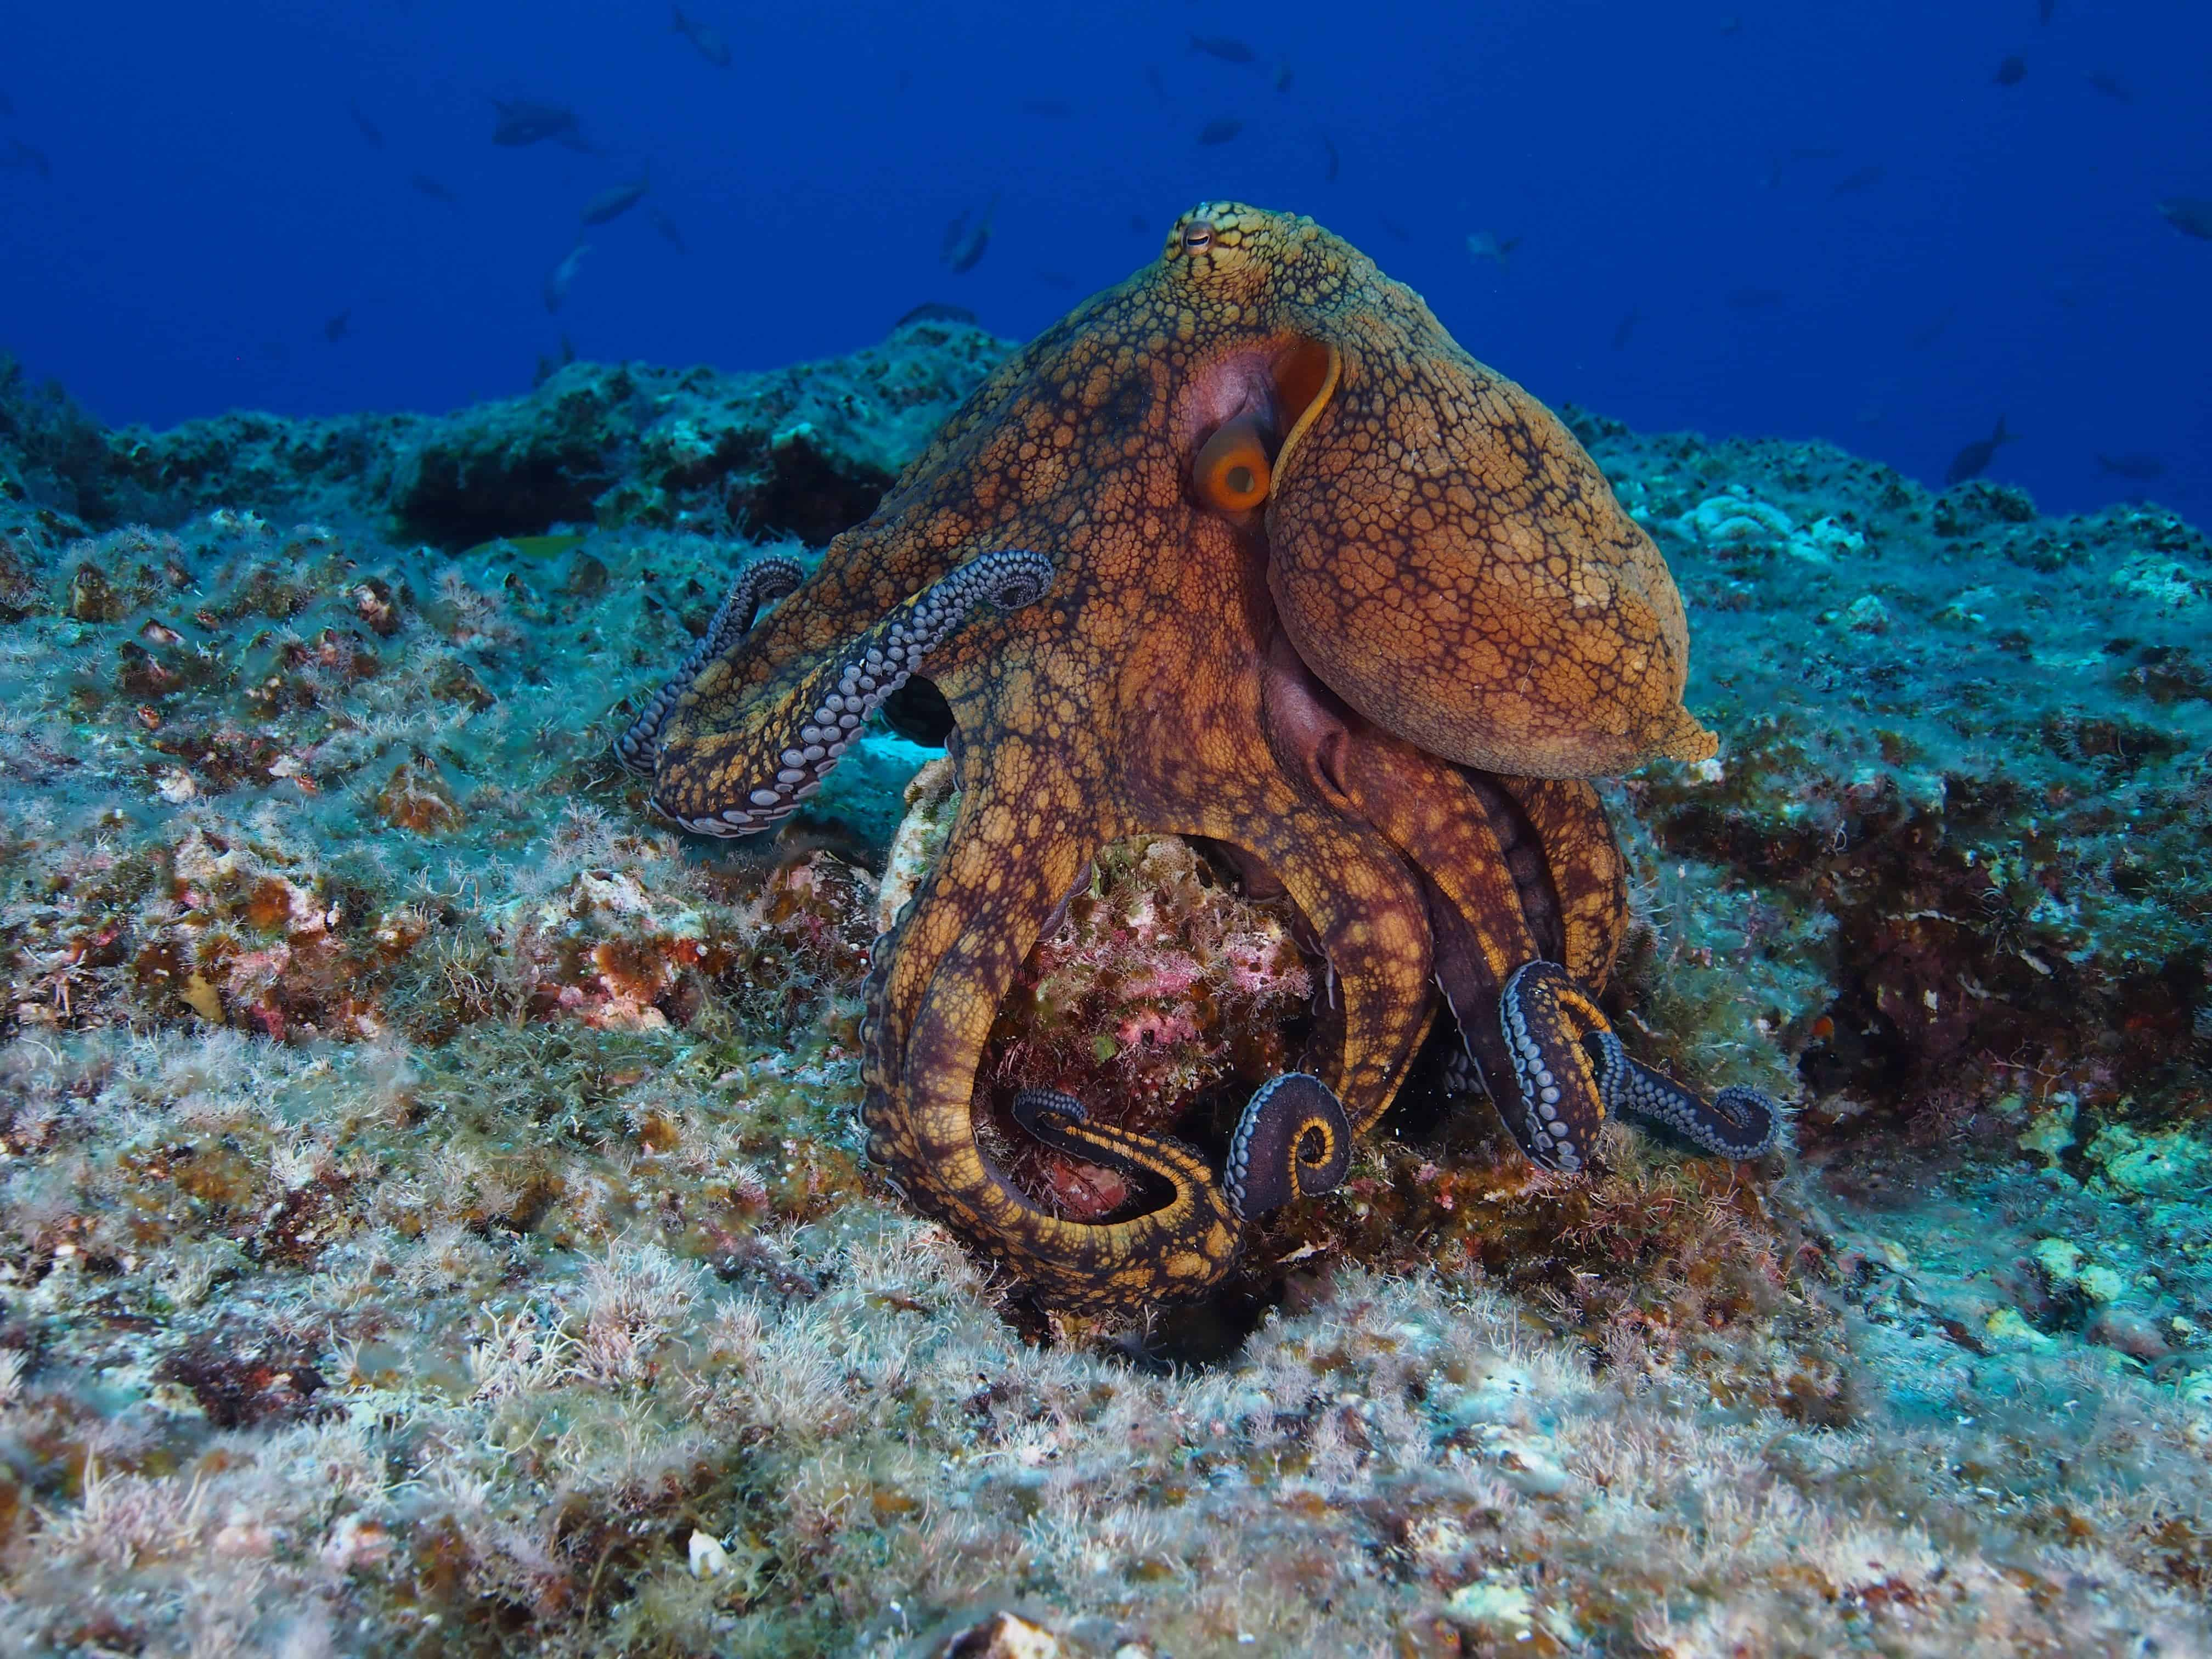 Octopus at San Benedicto on our Channel Islands Dive adventures Socorro trip aboard the Nautilus Explorer